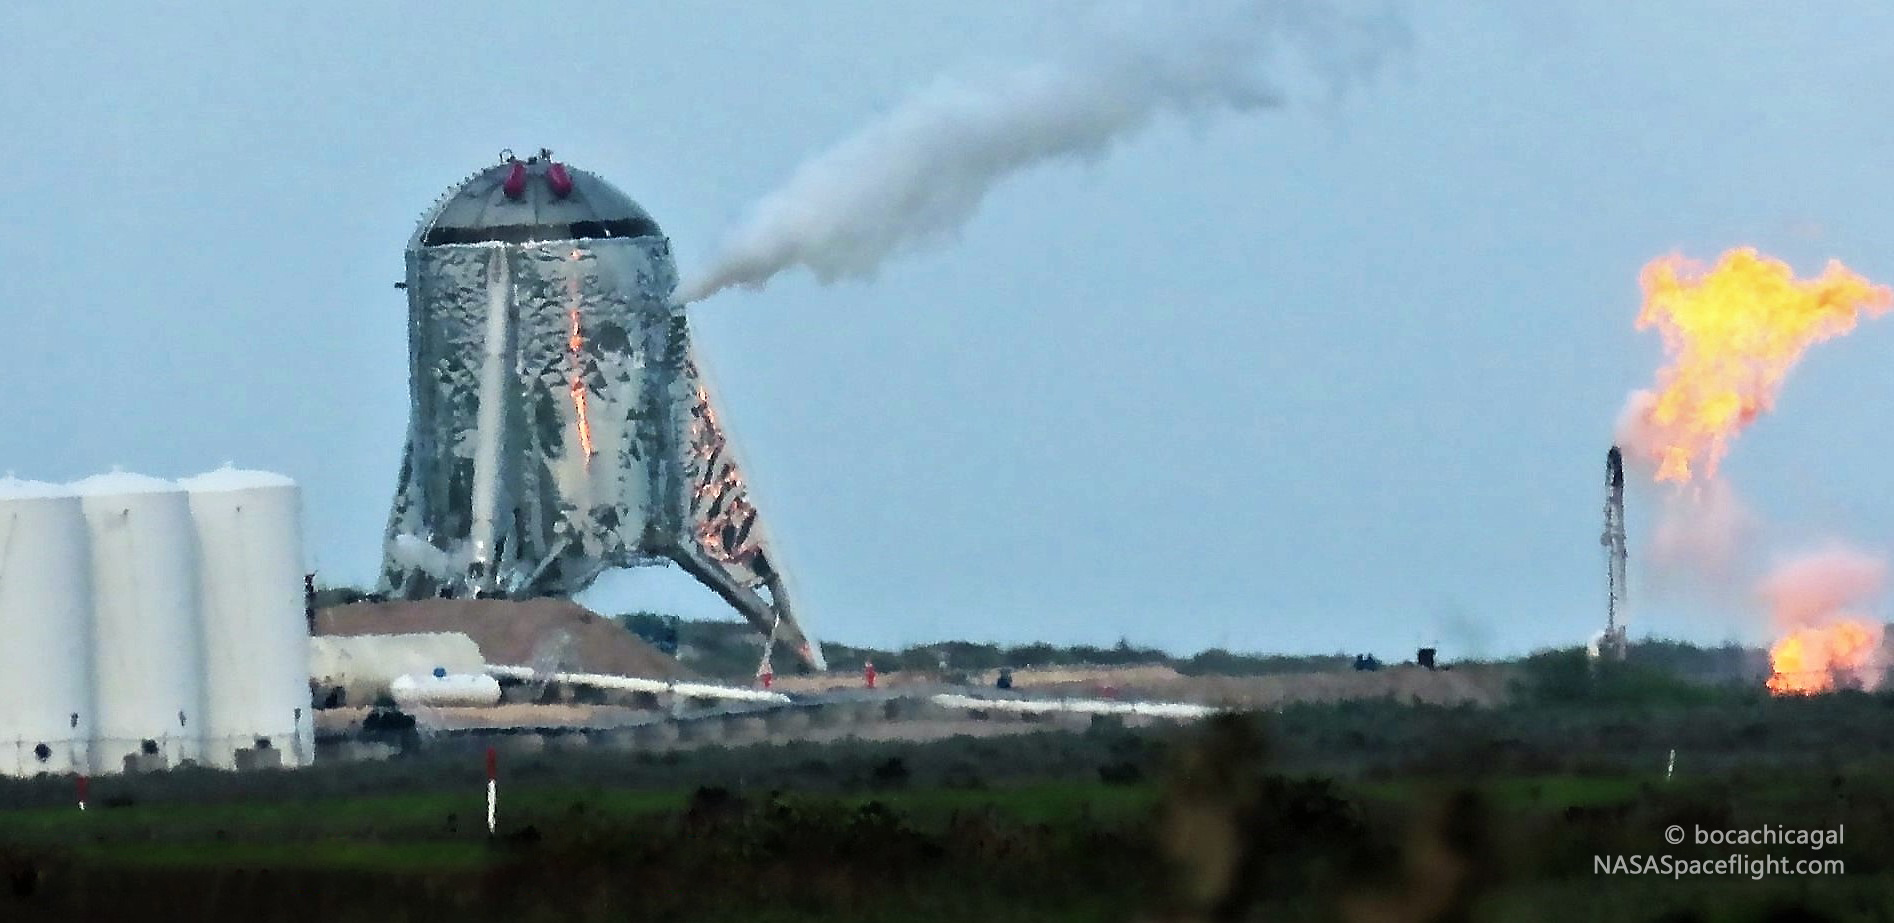 Boca Chica Starhopper testing 033019 (NASASpaceflight – bocachicagal) 2 edit